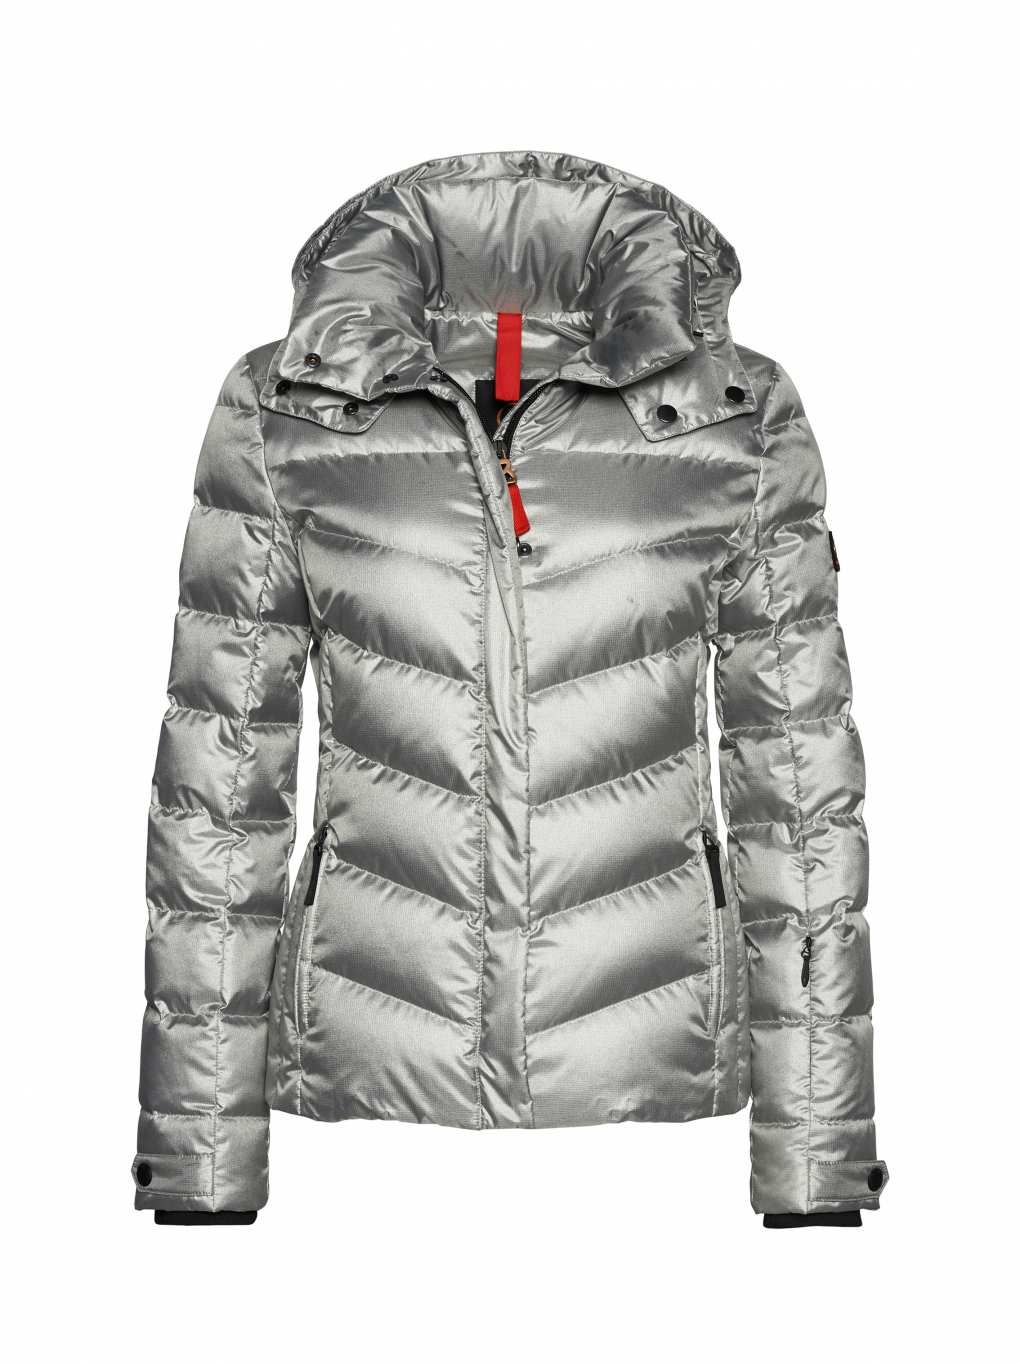 8b719fc728 SKI DOWN JACKET SALLY in Silver for Women